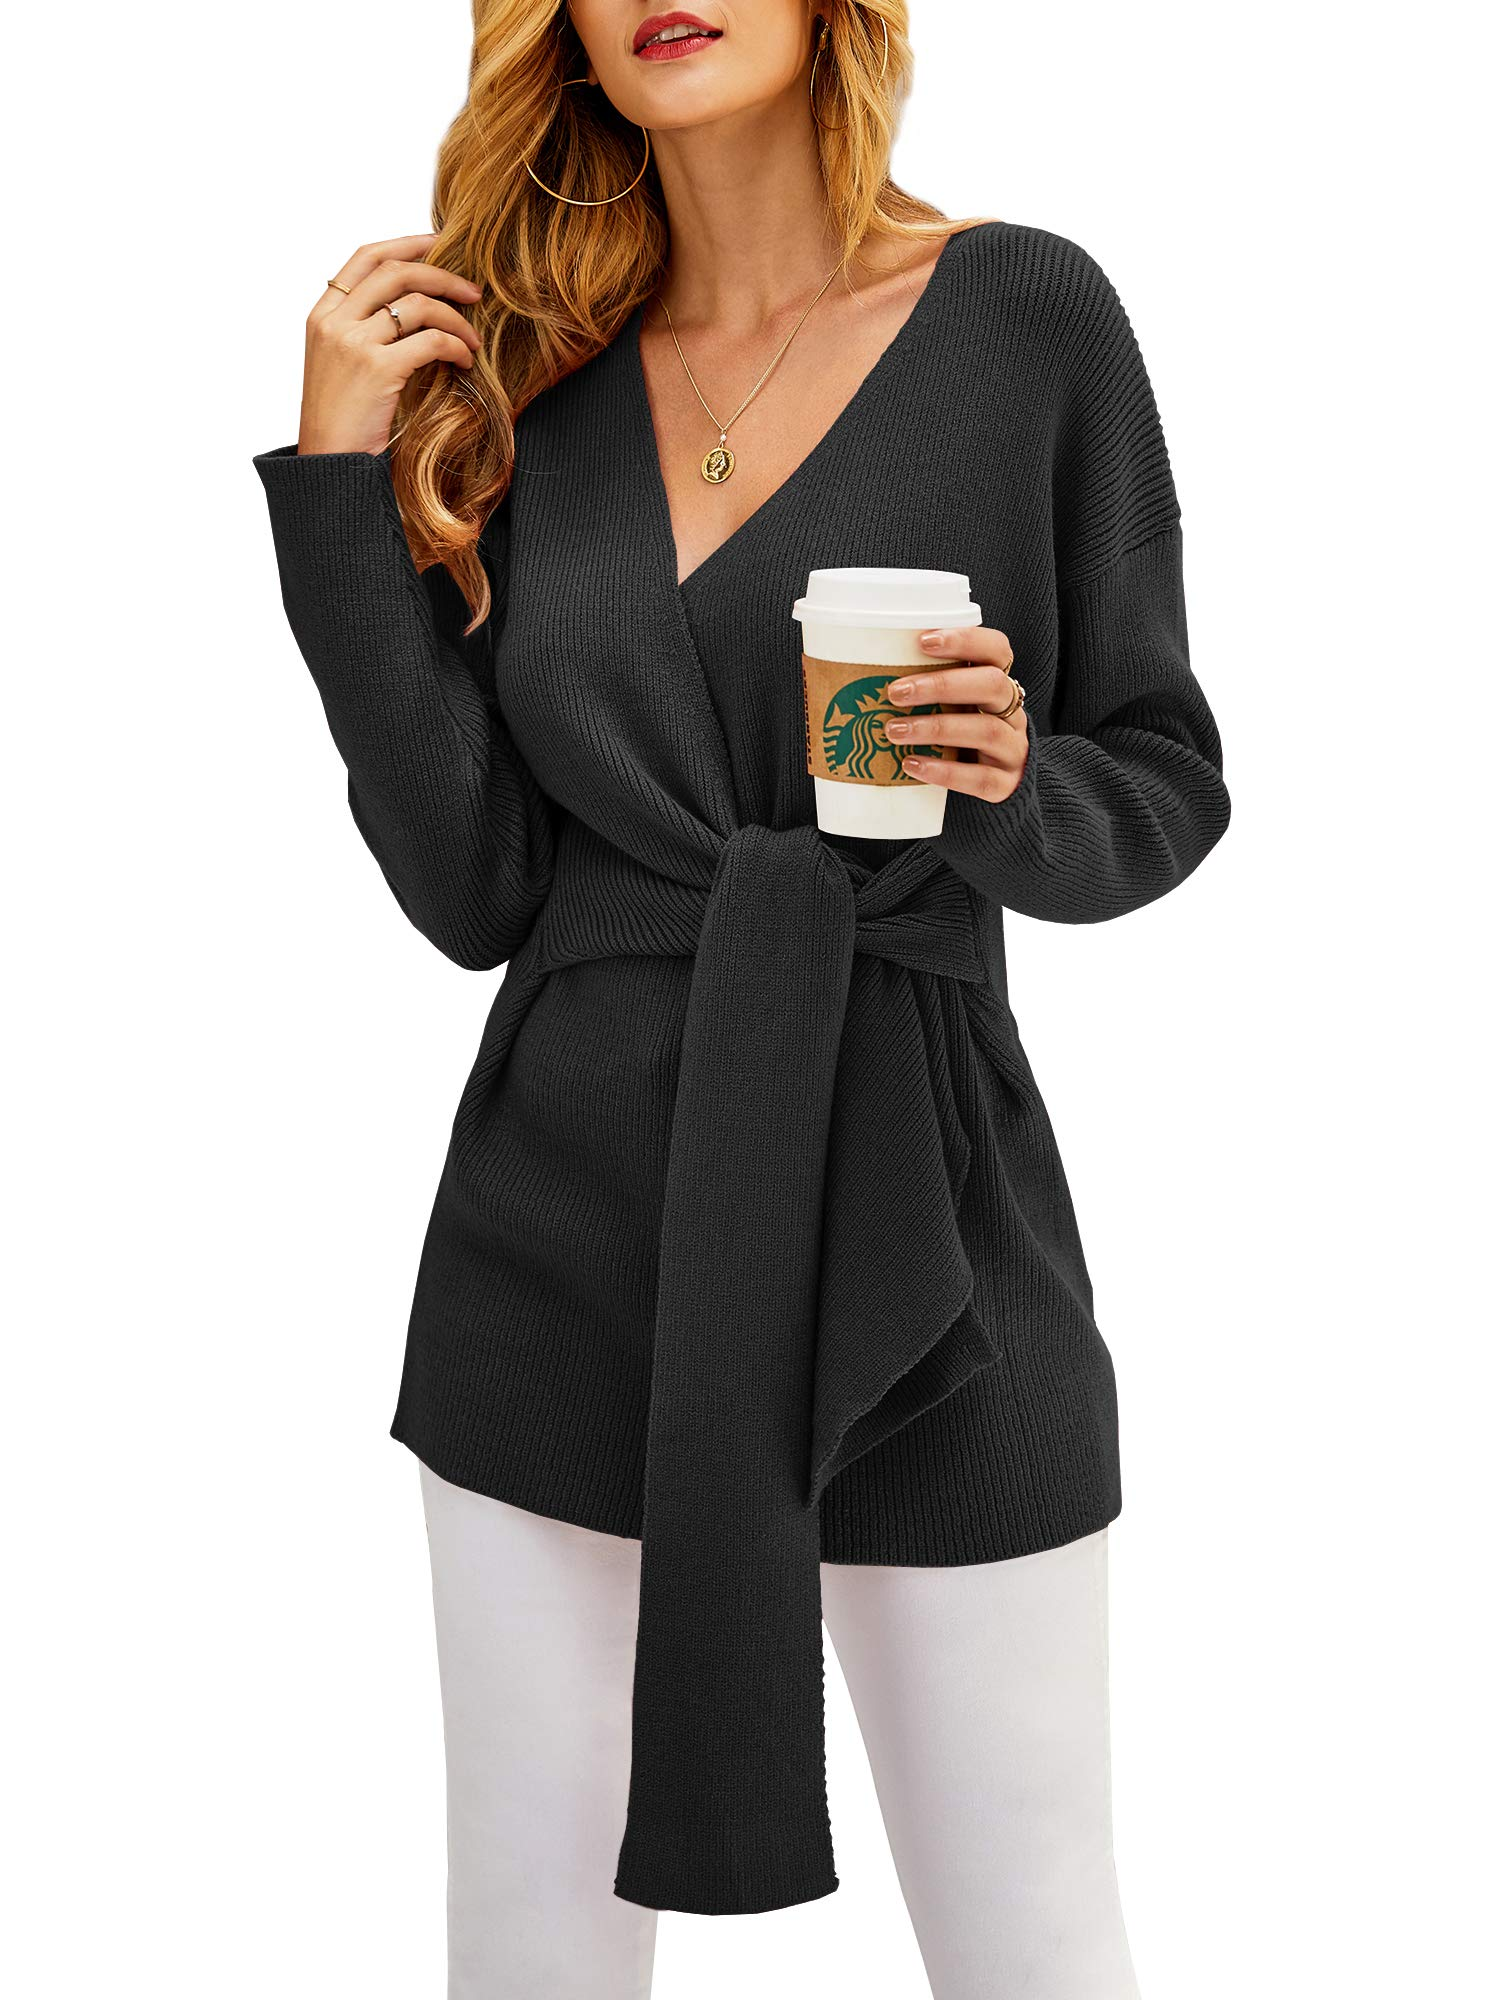 Yacooh Womens Tie Knot Front Wrap Sweater Blouse Knitted Long Sleeve V-Neck Bodycon Tunic Pullover Dress Black